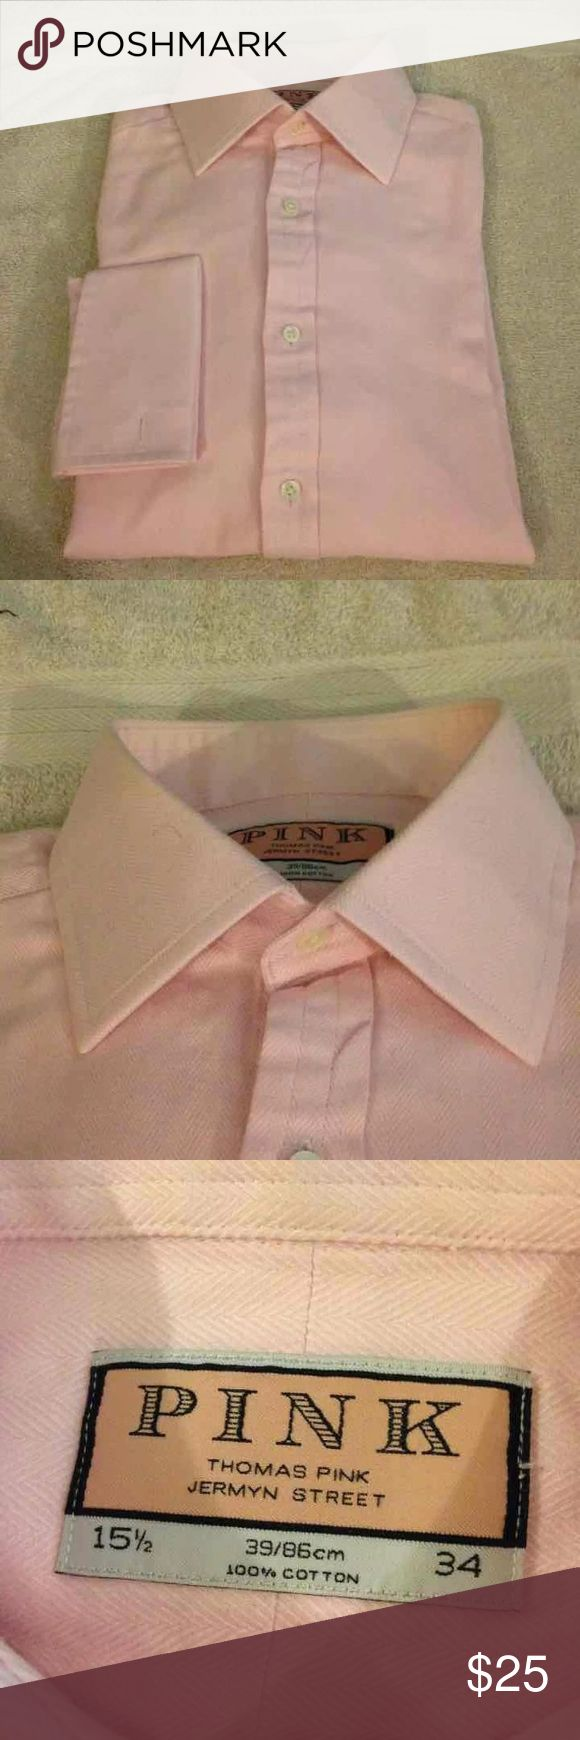 Thomas Pink Solid Pink French Cuff Shirt 15.5-34 Thomas Pink Solid Pink Herringbone French Cuff Dress Shirt size 15.5-34! Great condition! Please make reasonable offers and bundle! Ask questions! :) Thomas Pink Shirts Dress Shirts